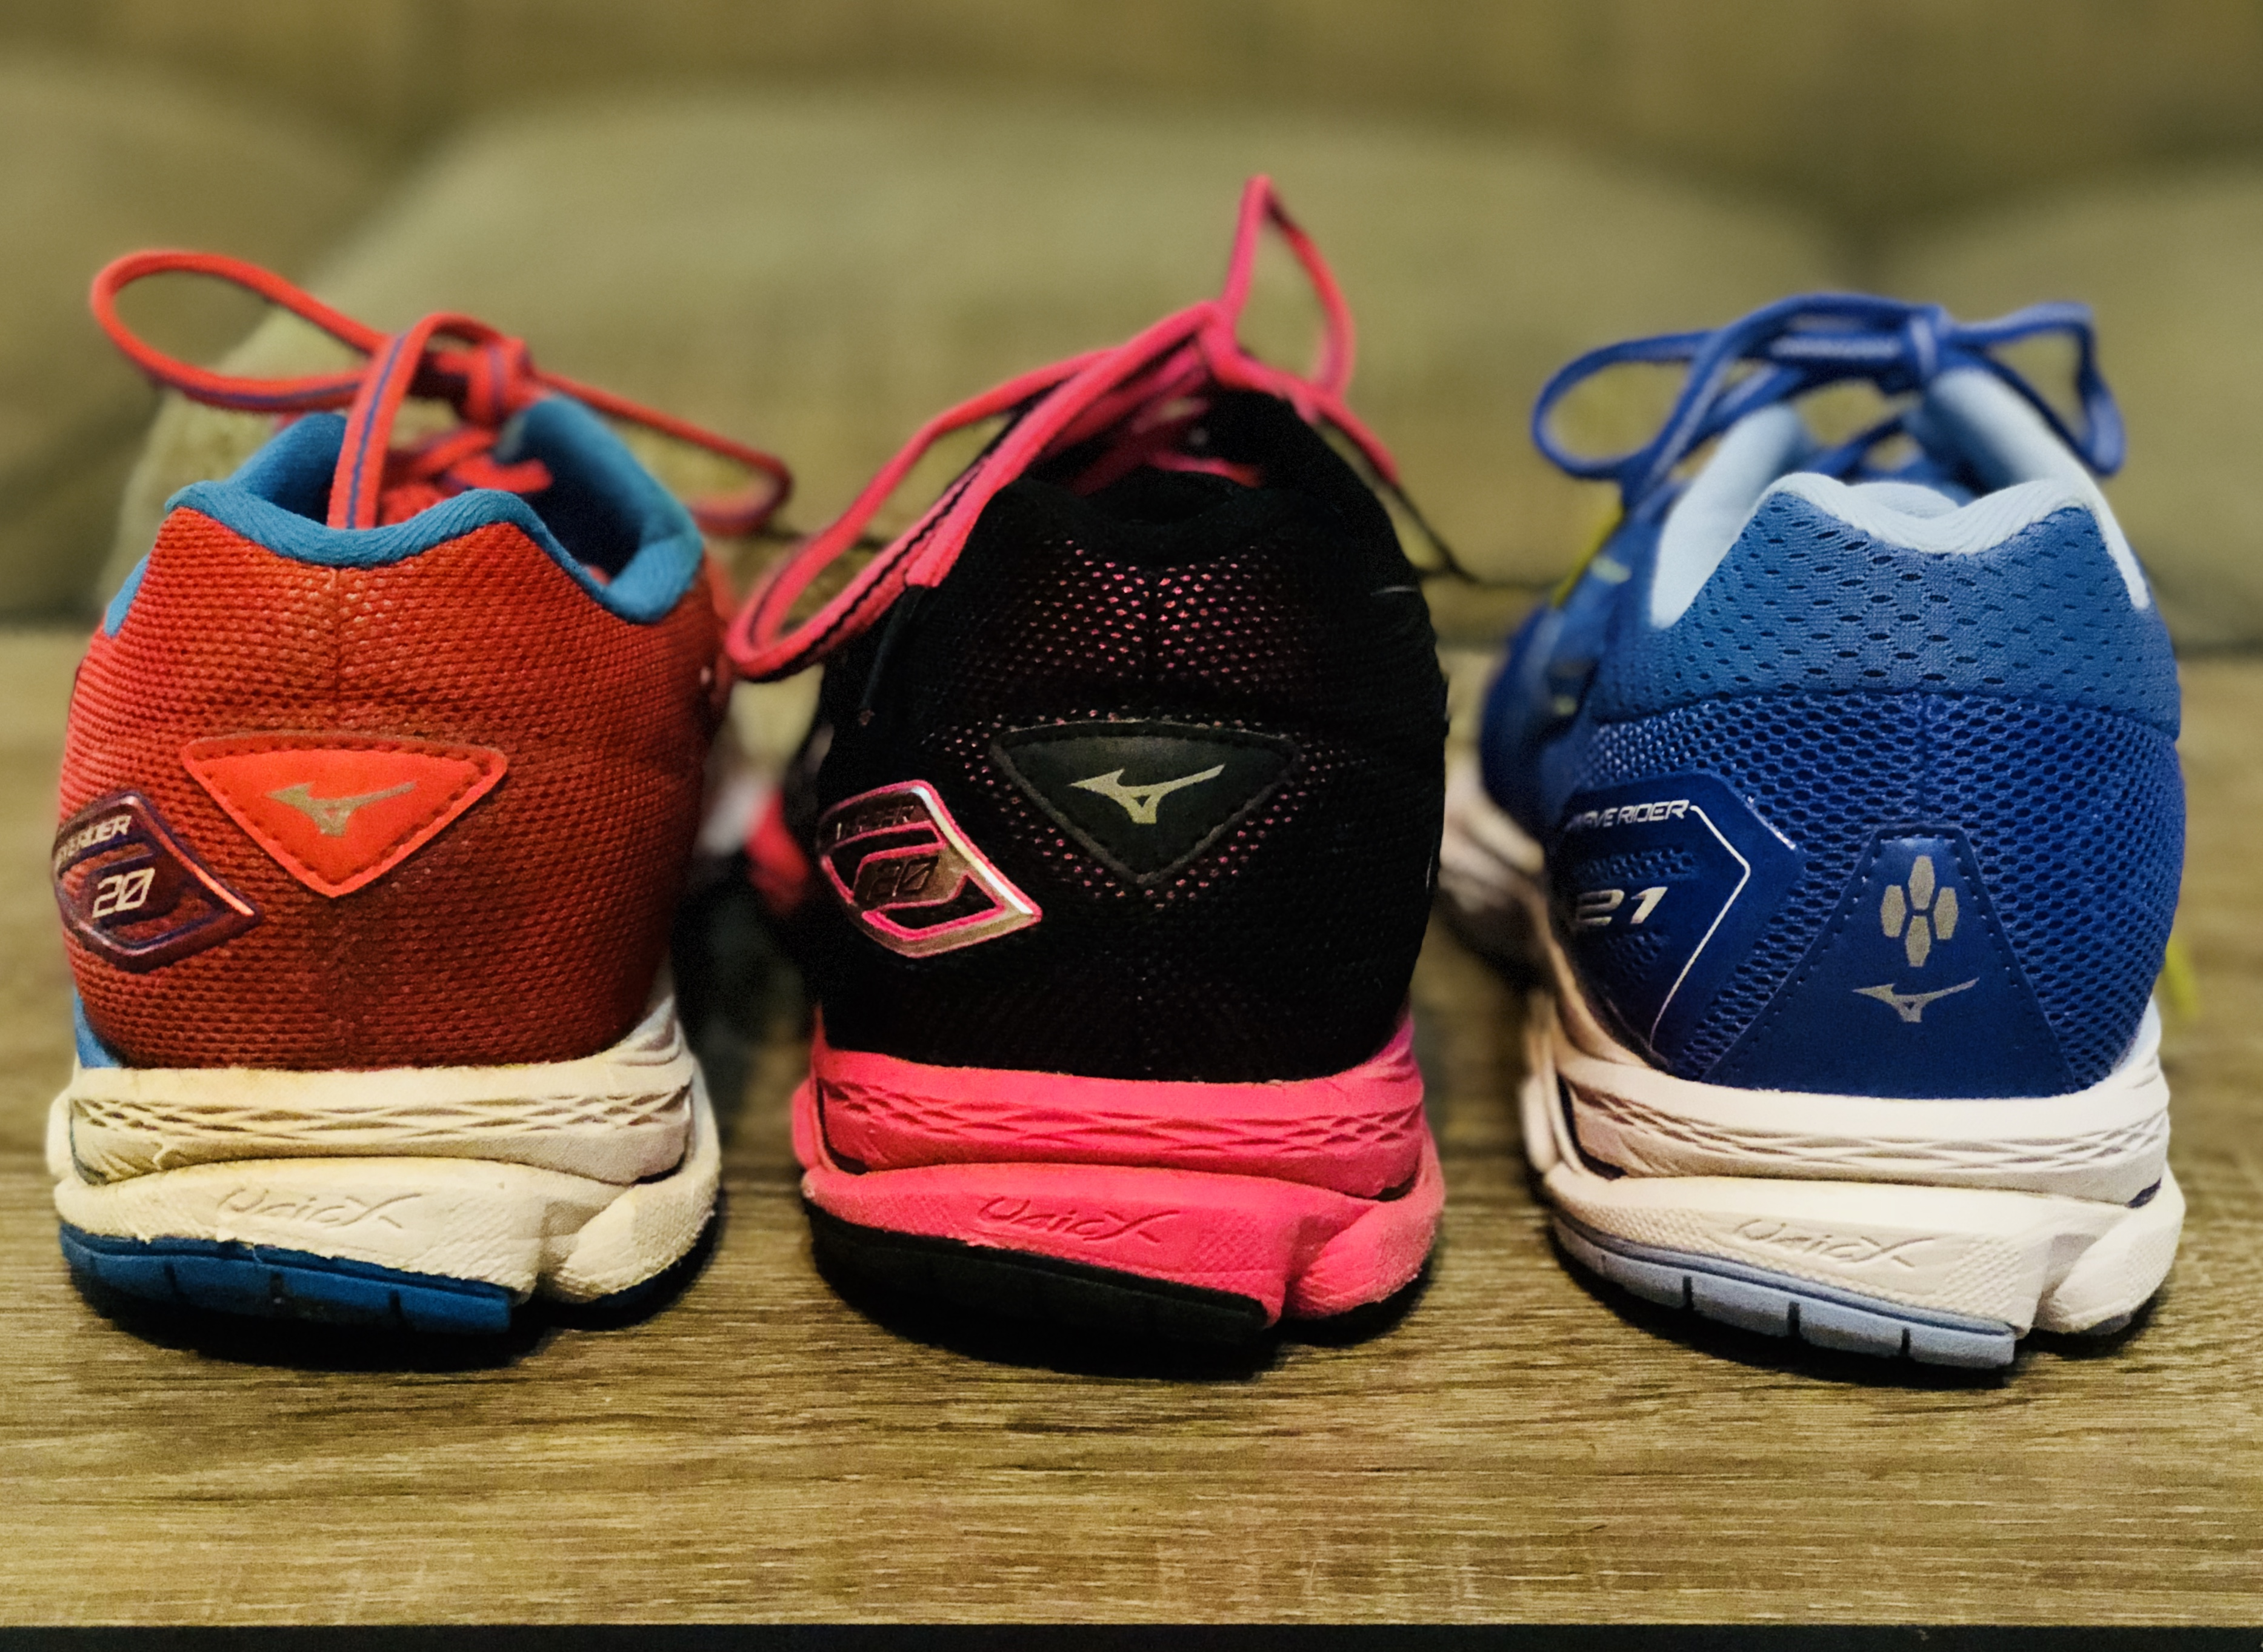 Mesh Running Shoes Make More Room In Toe Box